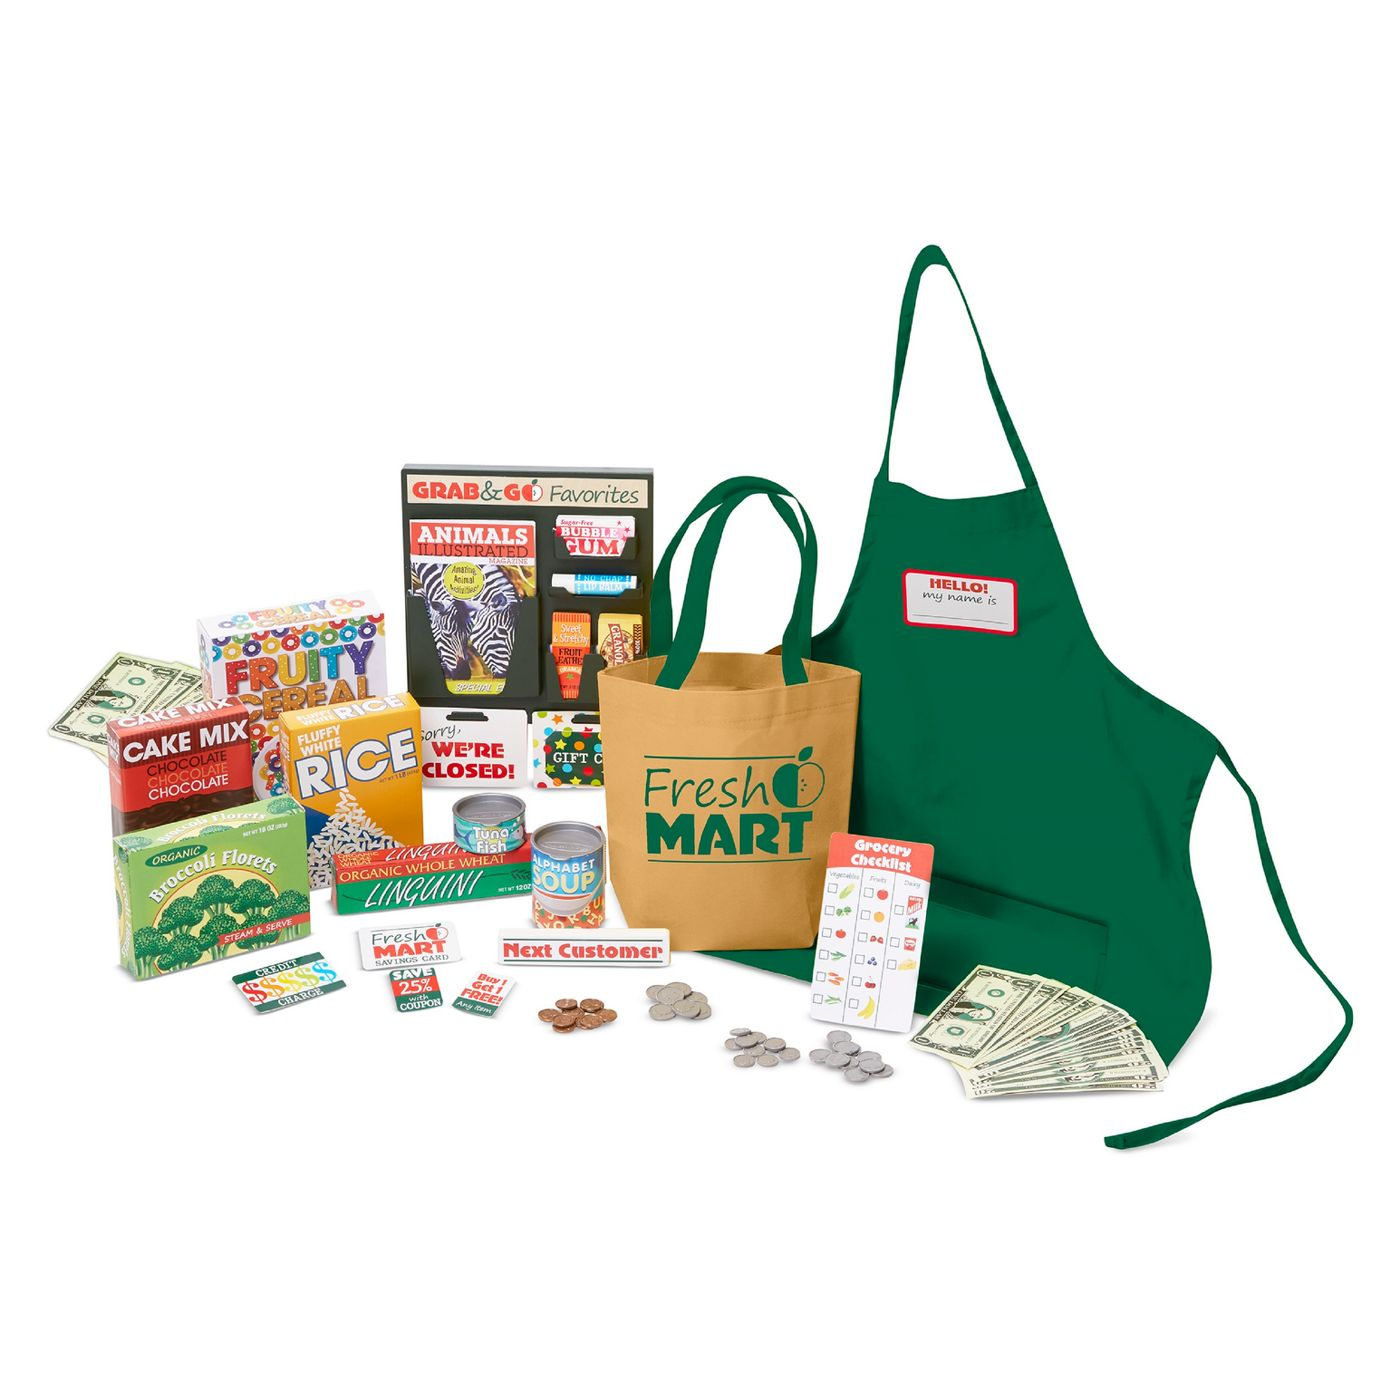 Melissa & Doug Fresh Mart Grocery Store Companion Collection - image 1 of 6